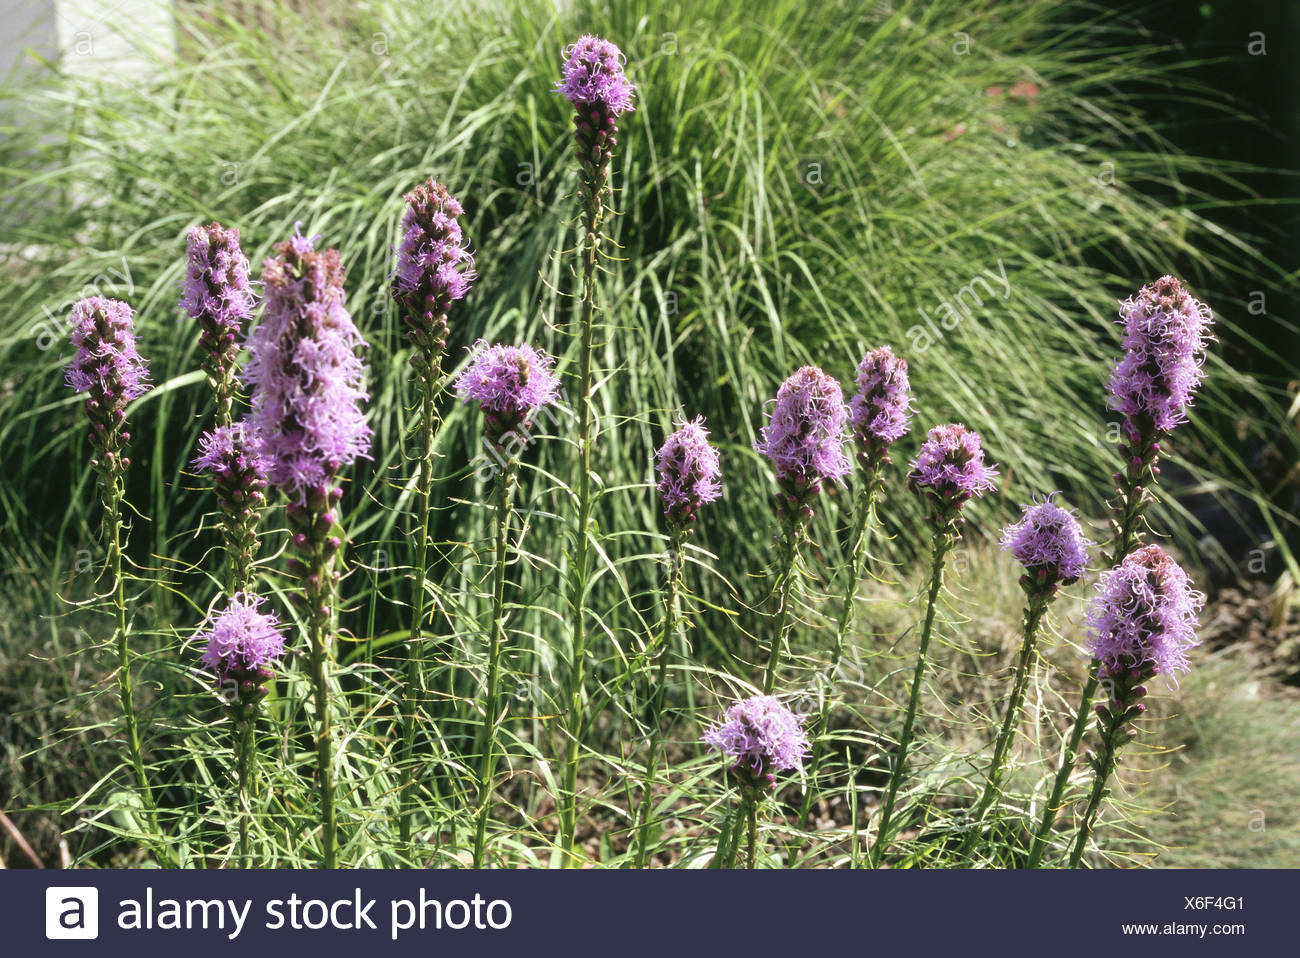 botany, dense blazing star (Liatris spicata), blue flowering, Additional-Rights-Clearance-Info-Not-Available - Stock Image